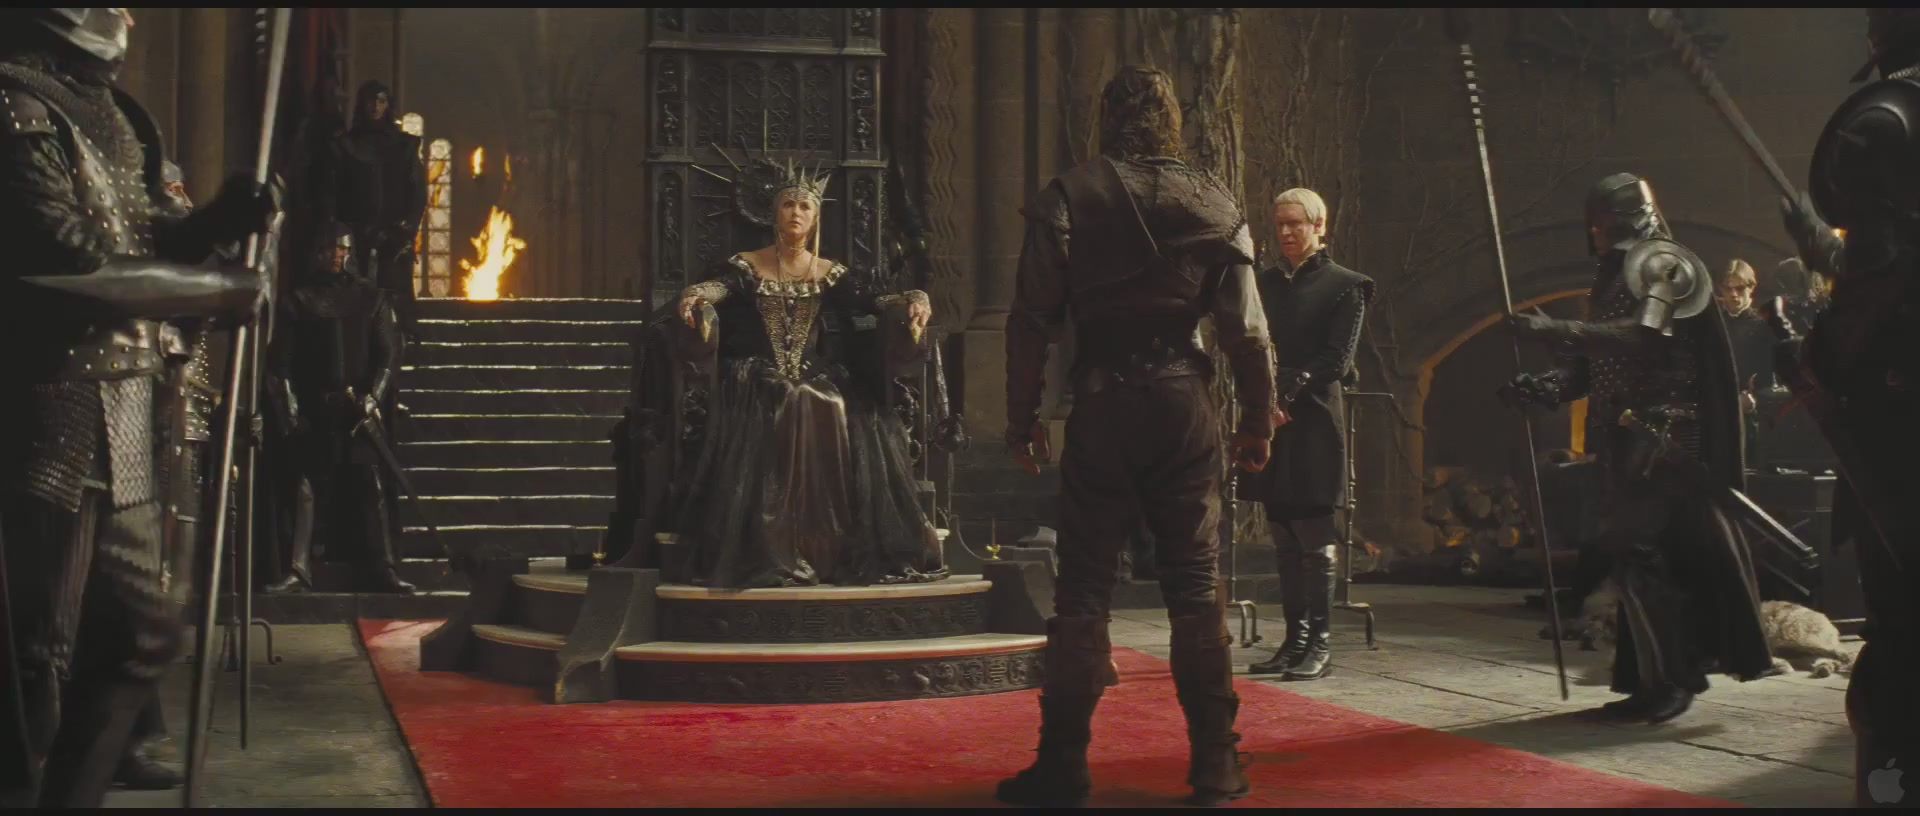 Snow White and the Huntsman official Trailer #1 HQ